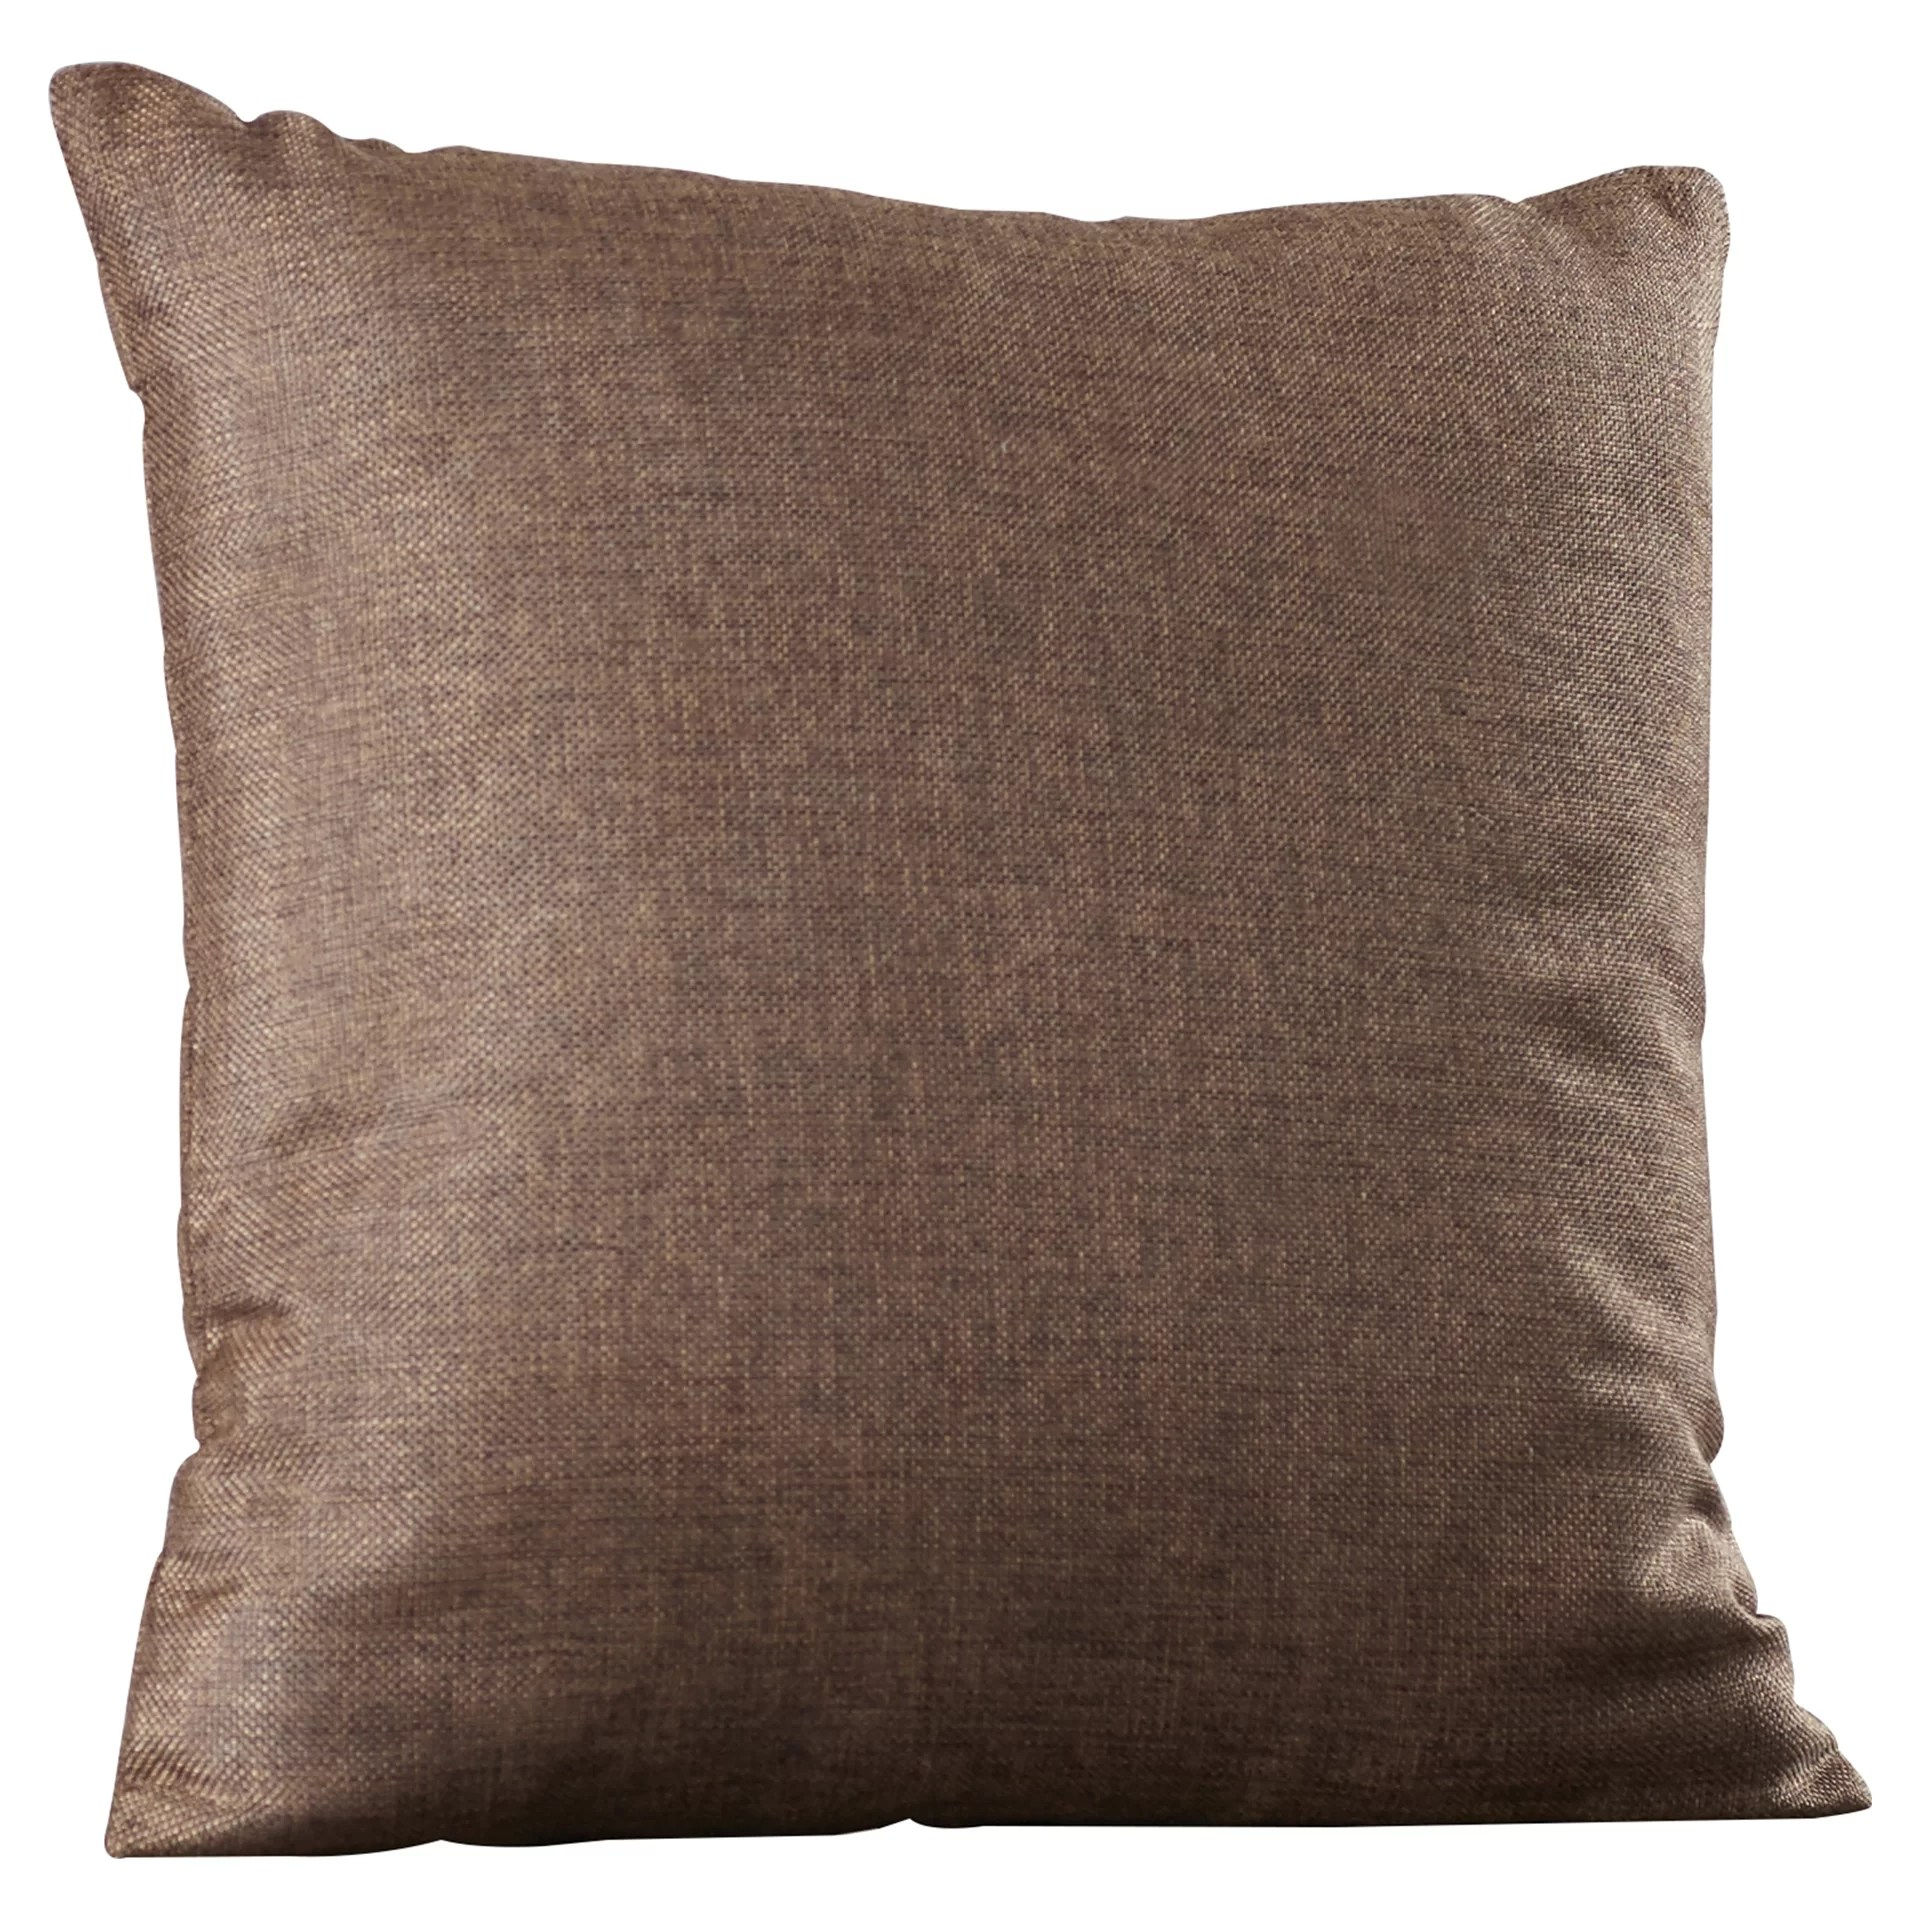 "Wayfair Basics Wayfair Basics 18"" Throw Pillow & Reviews"